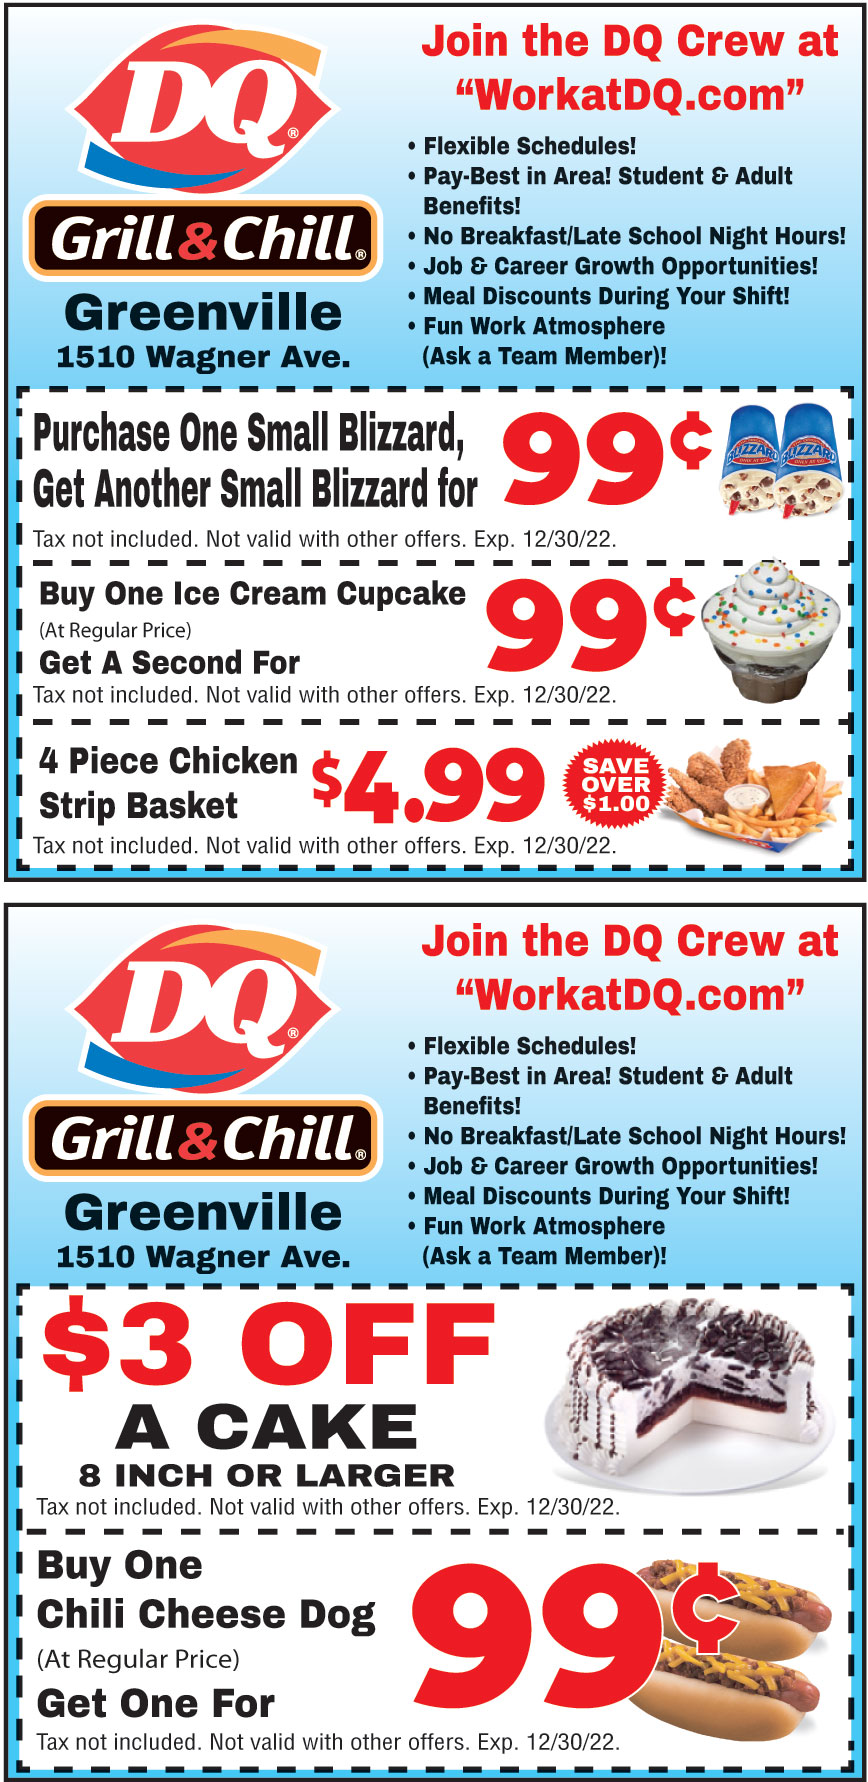 DAIRY QUEEN GRILL